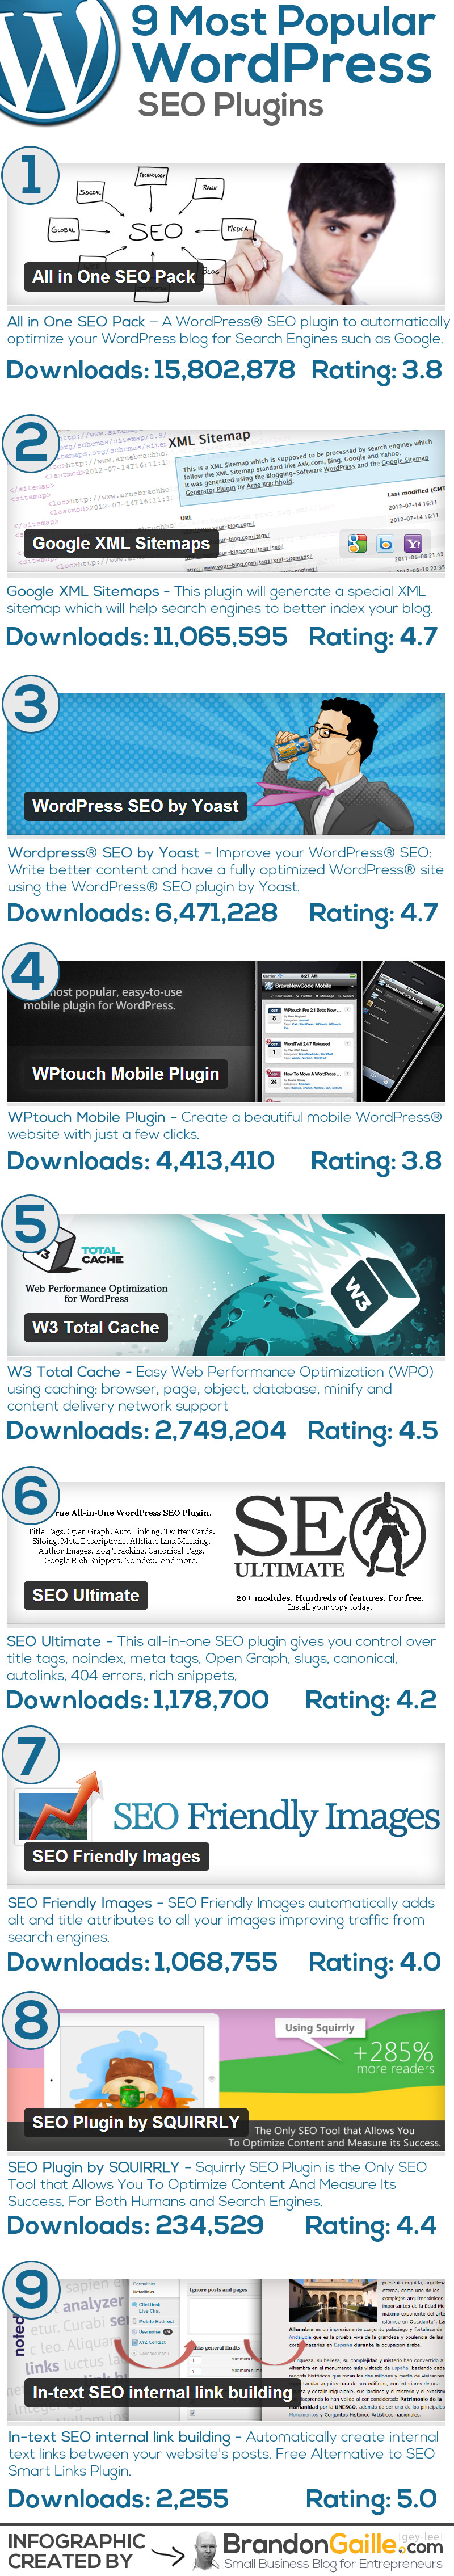 9-killer-seo-plugins-for-wordpress_525ebfd07a3ee